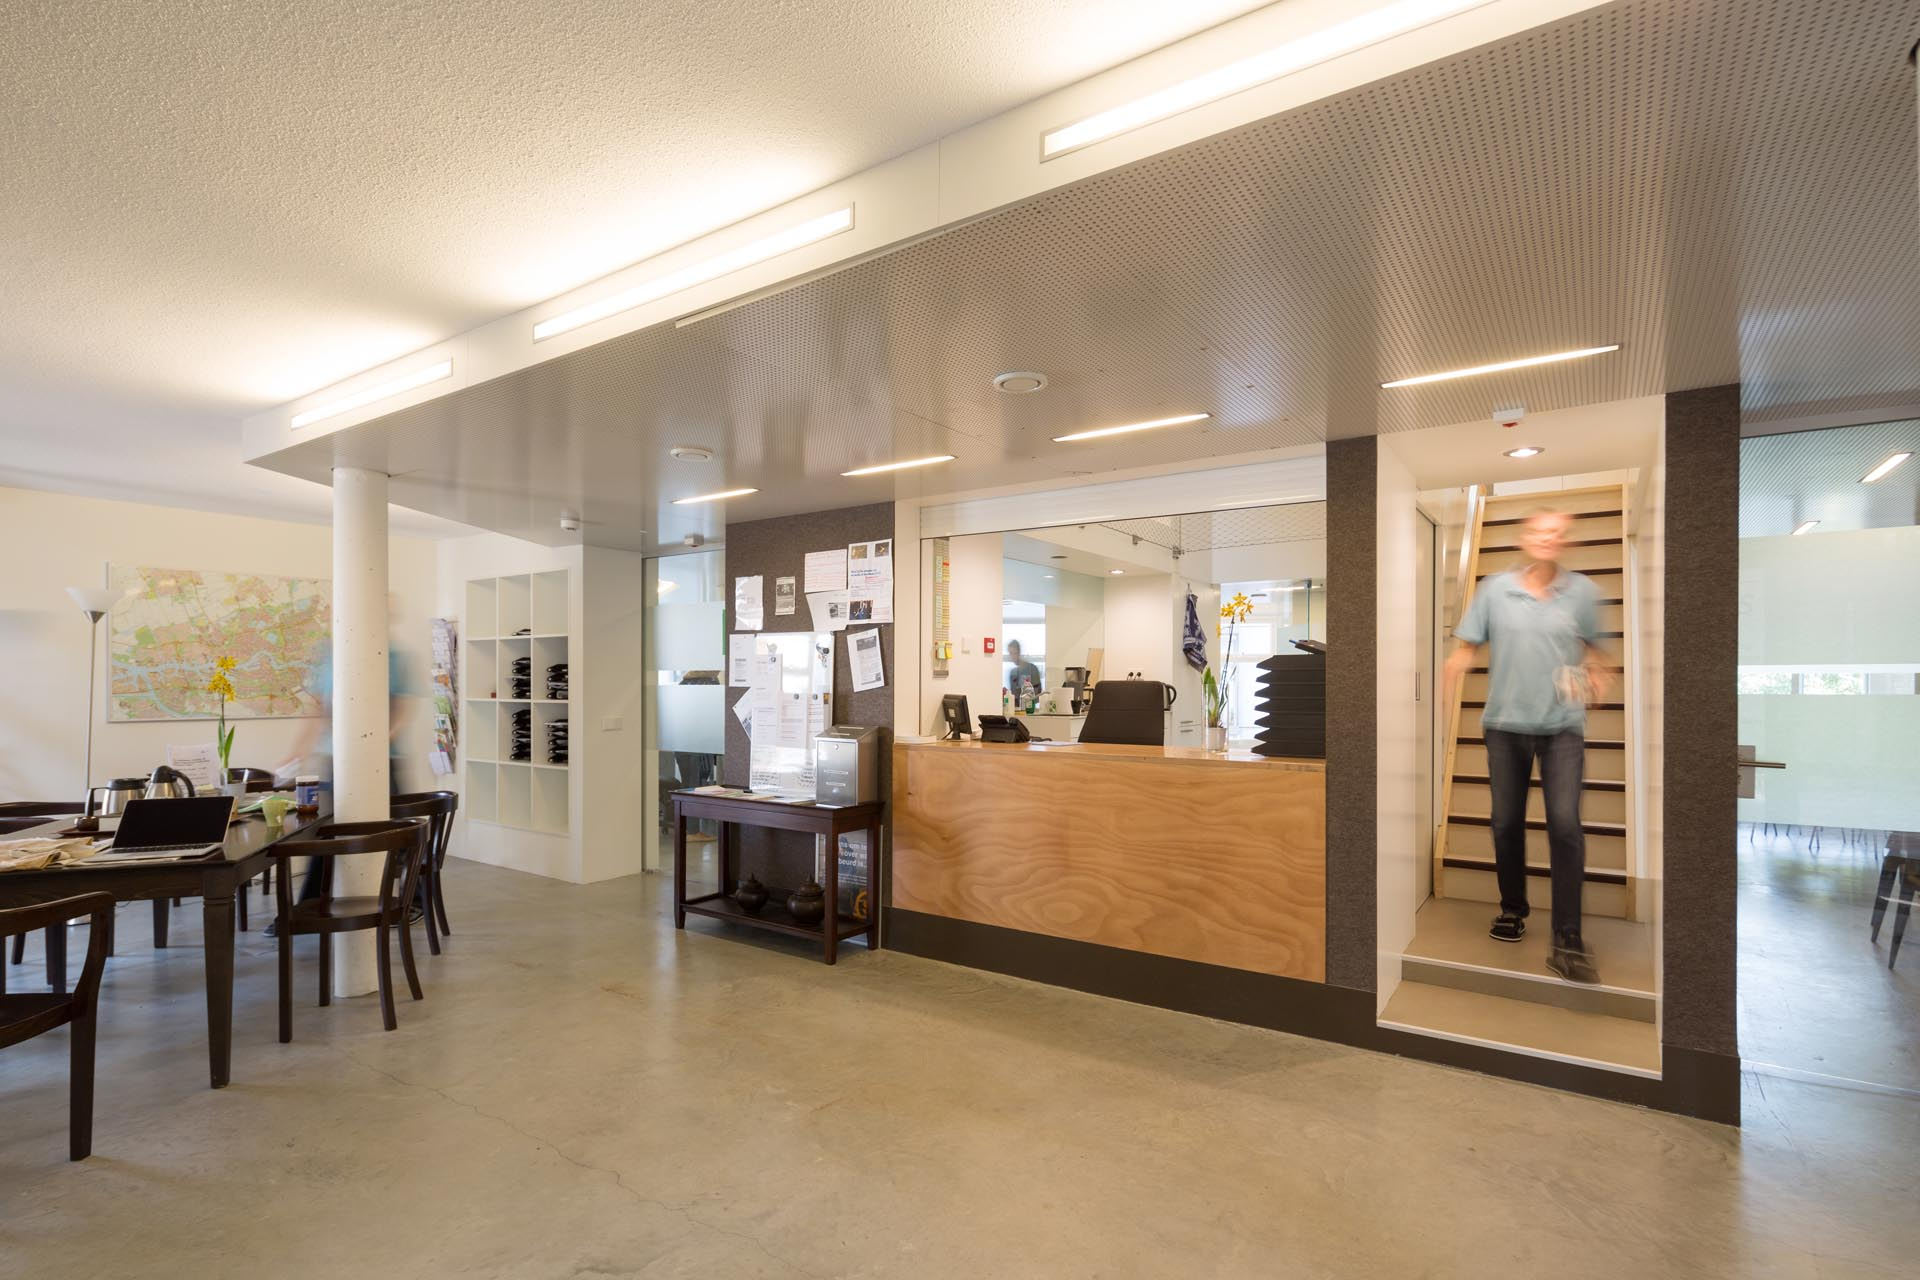 and staff rooms are on the ground floor. Photo Ossip van Duivenbode